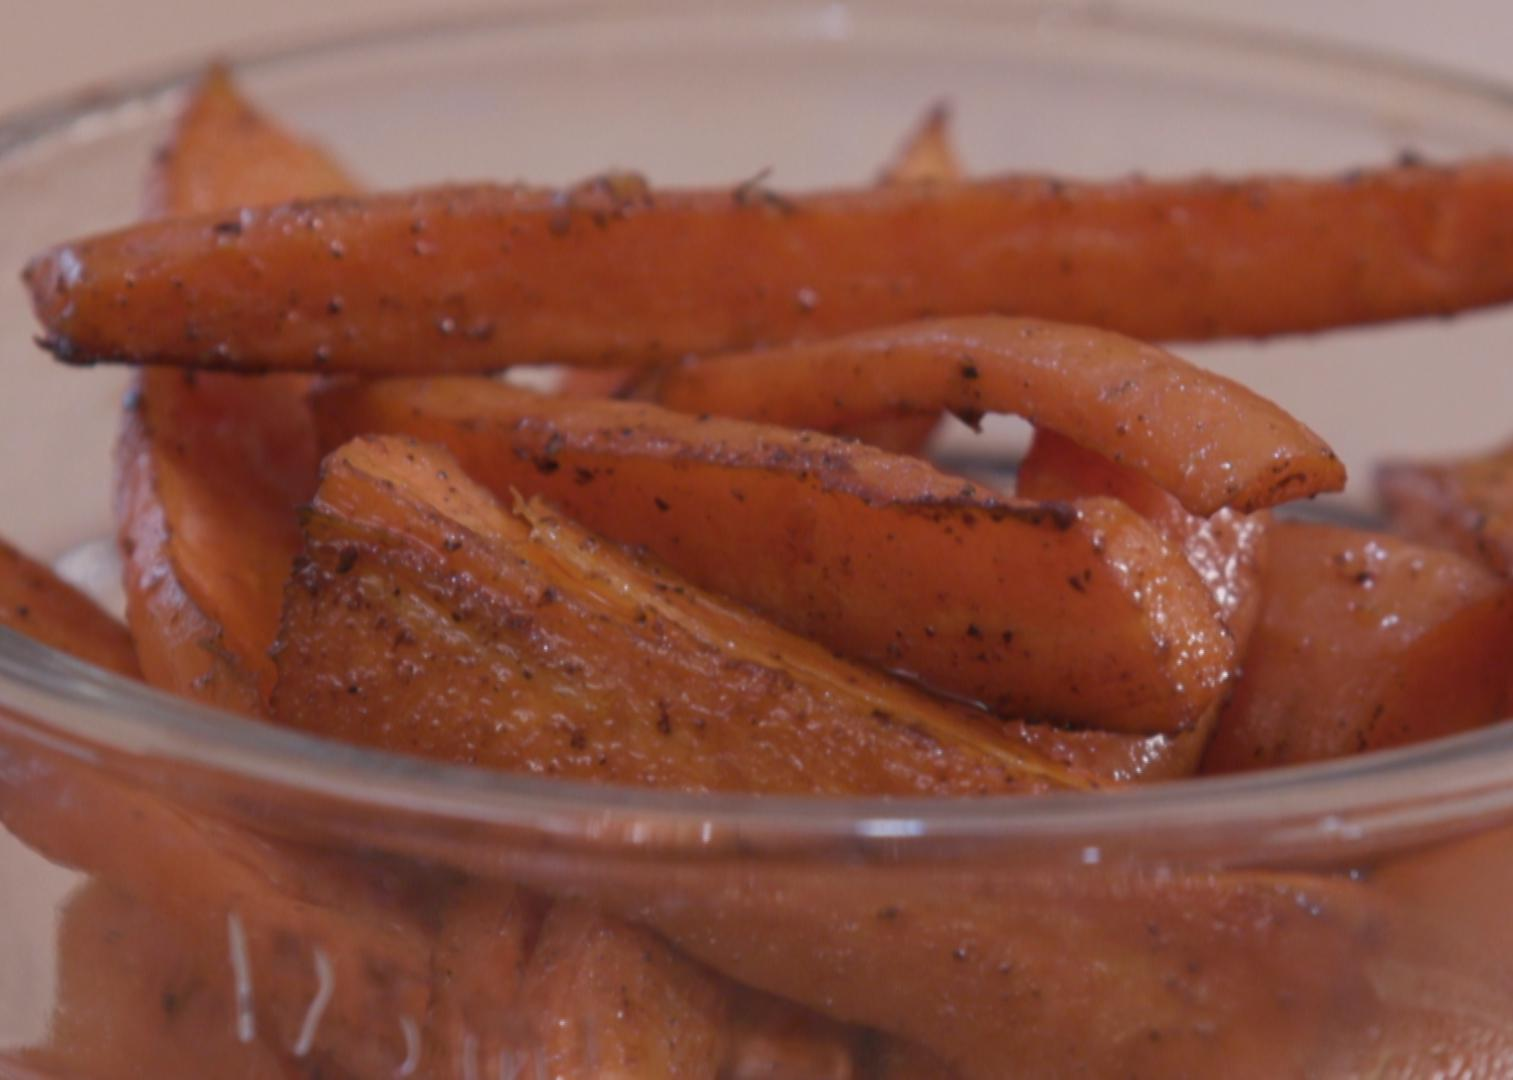 Oven-roasted carrots in a clear glass bowl